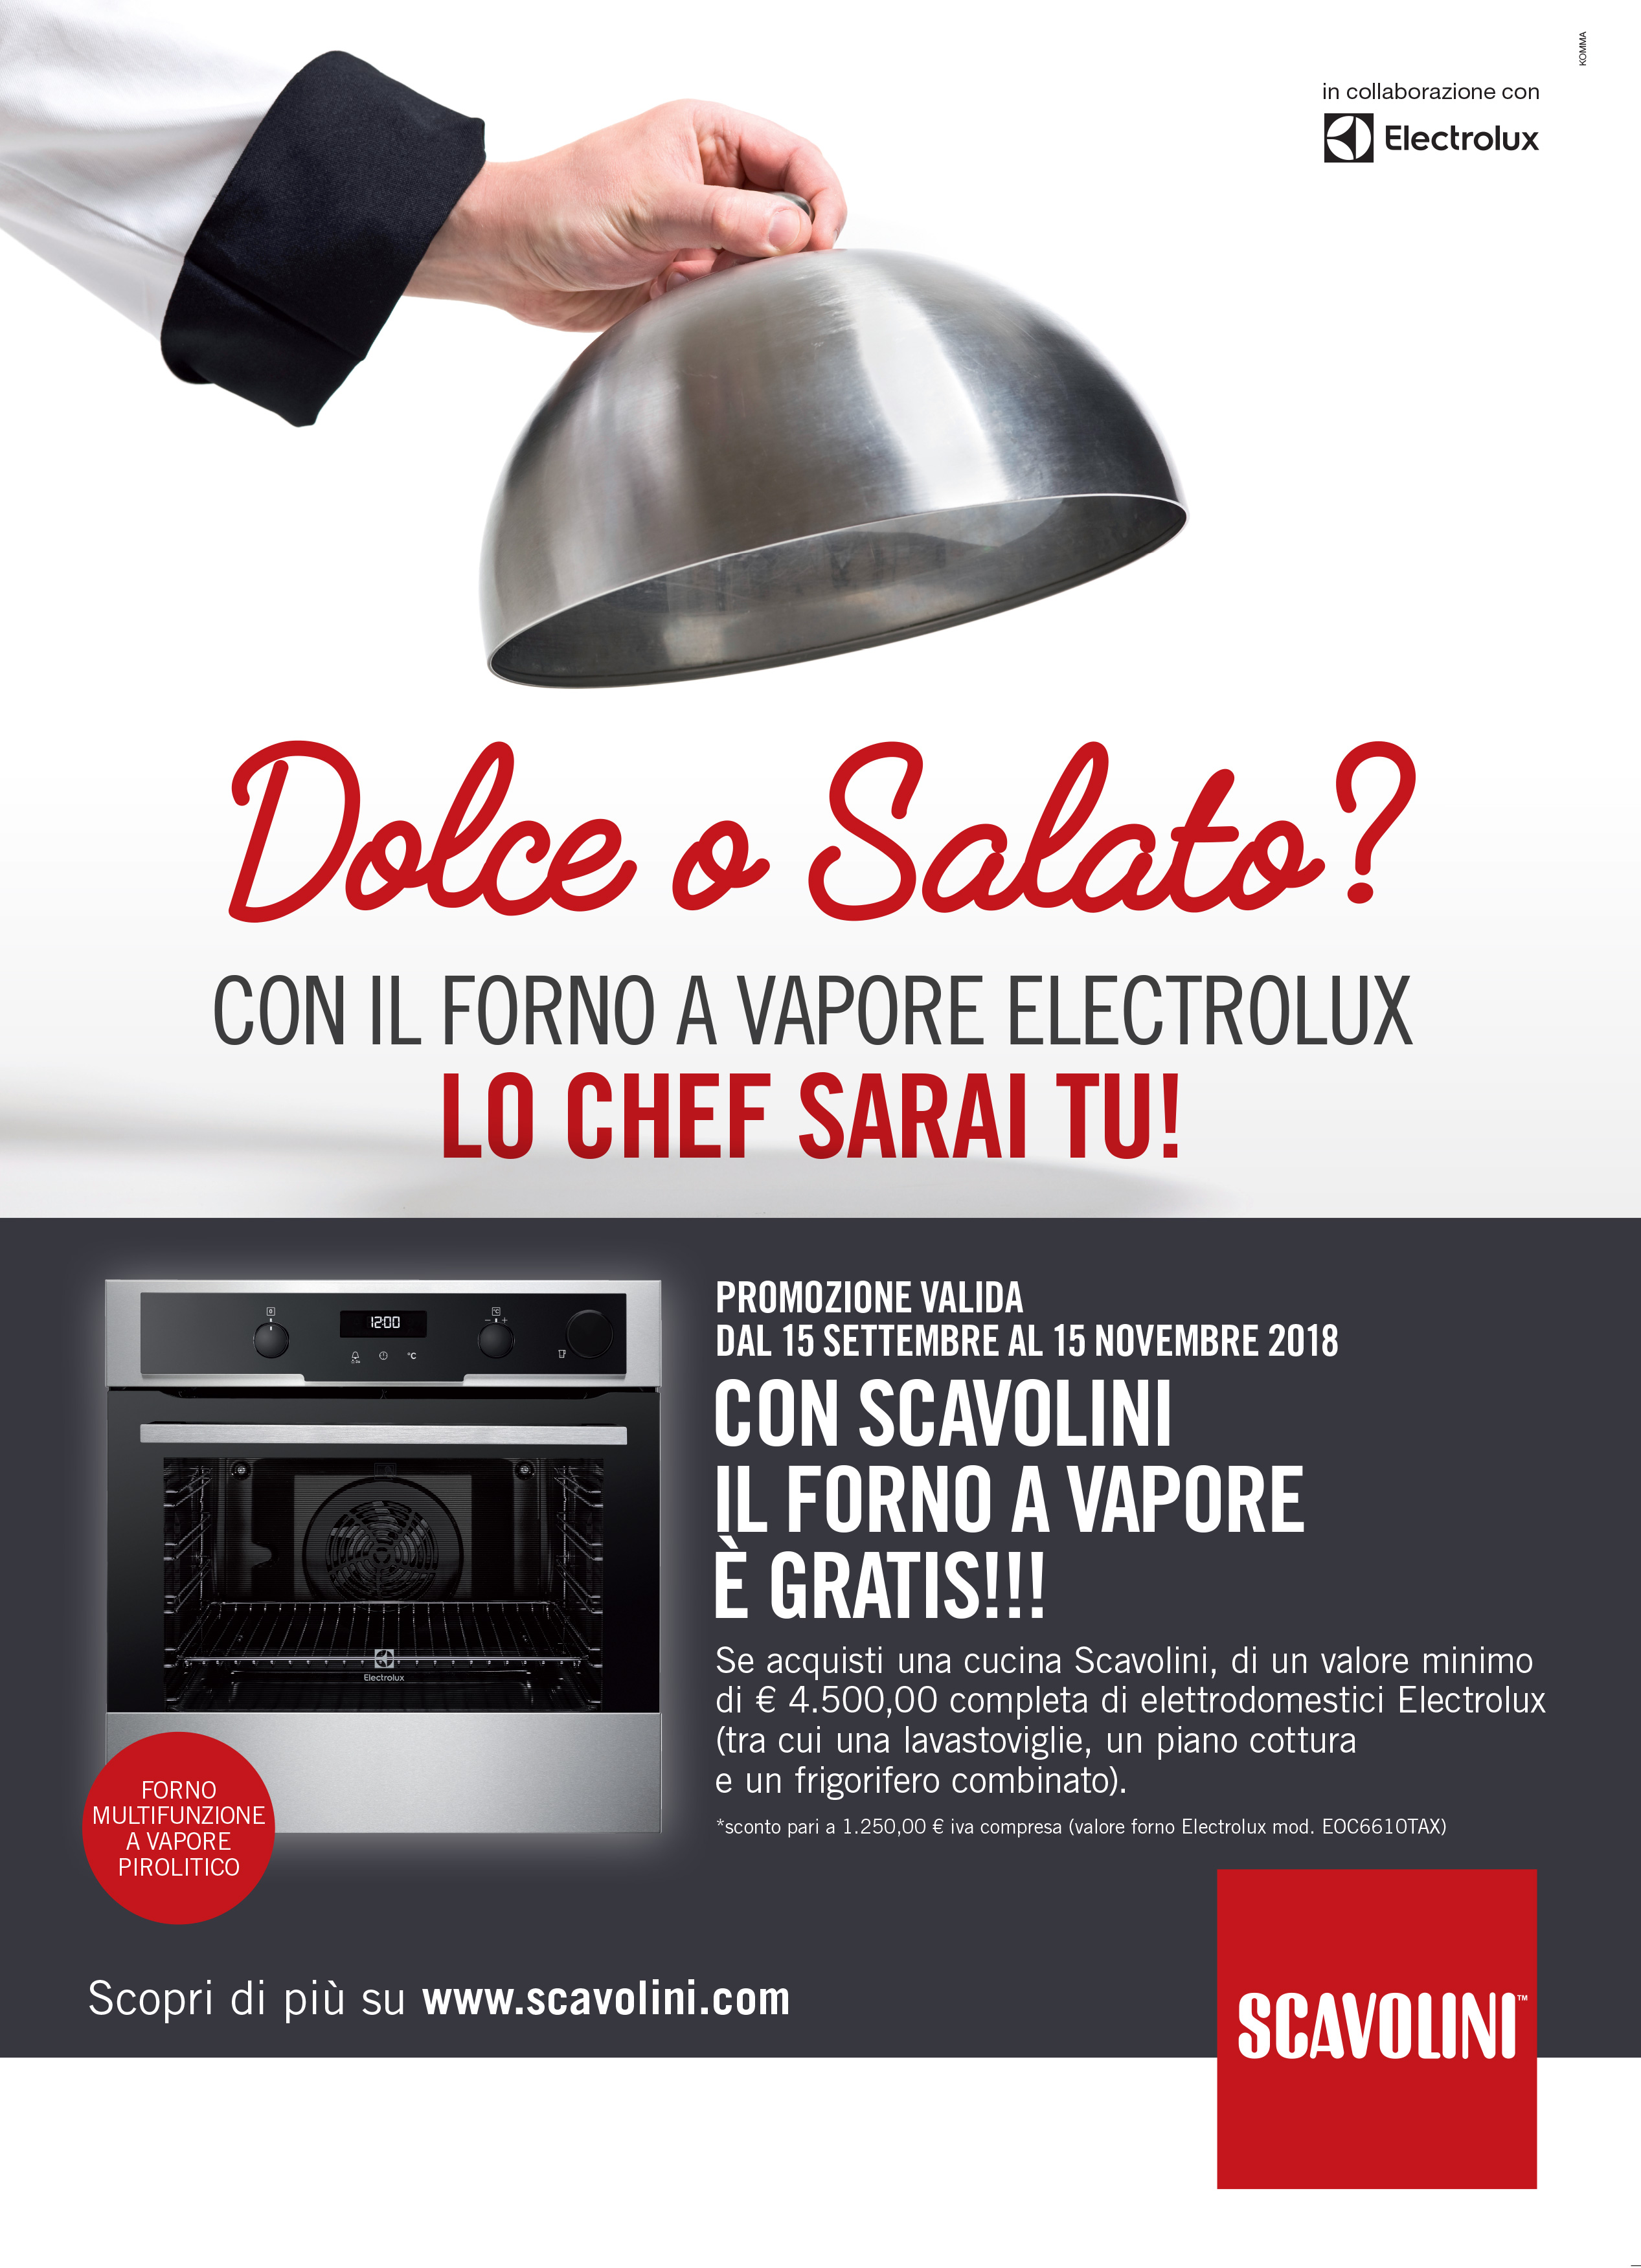 A4-Promo-Electrolux-dolce-o-salato-NO-PERS_1